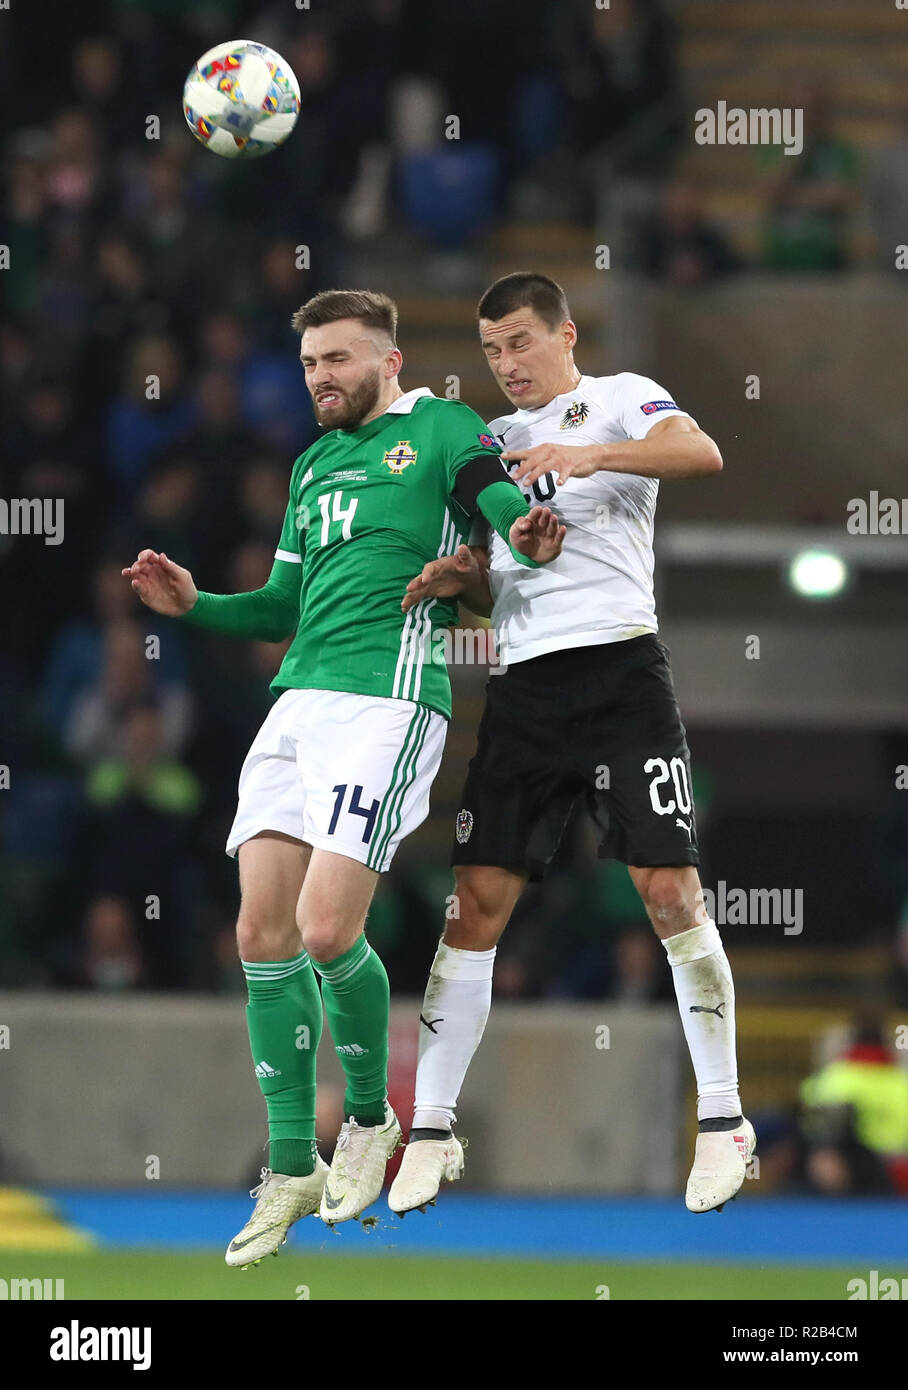 13a6b9a4d6 Northern Ireland s Stuart Dallas (left) and Austria s Stefan Lainer battle  for the ball during the UEFA Nations League